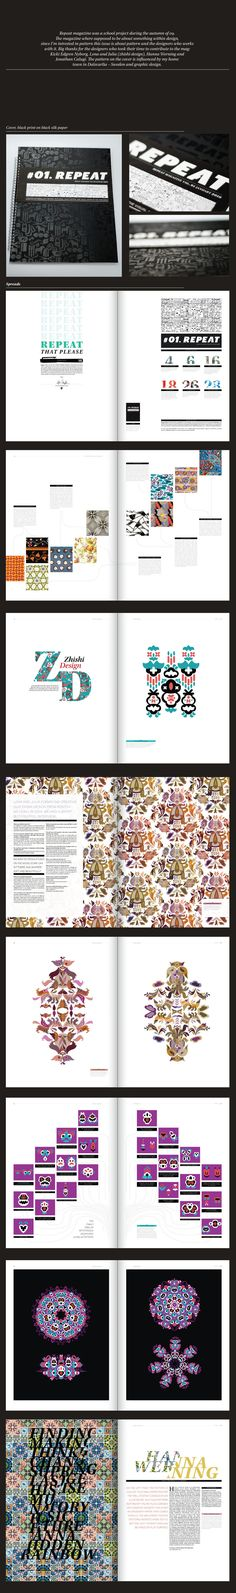 70 Exemplos de design editorial | Choco la Design